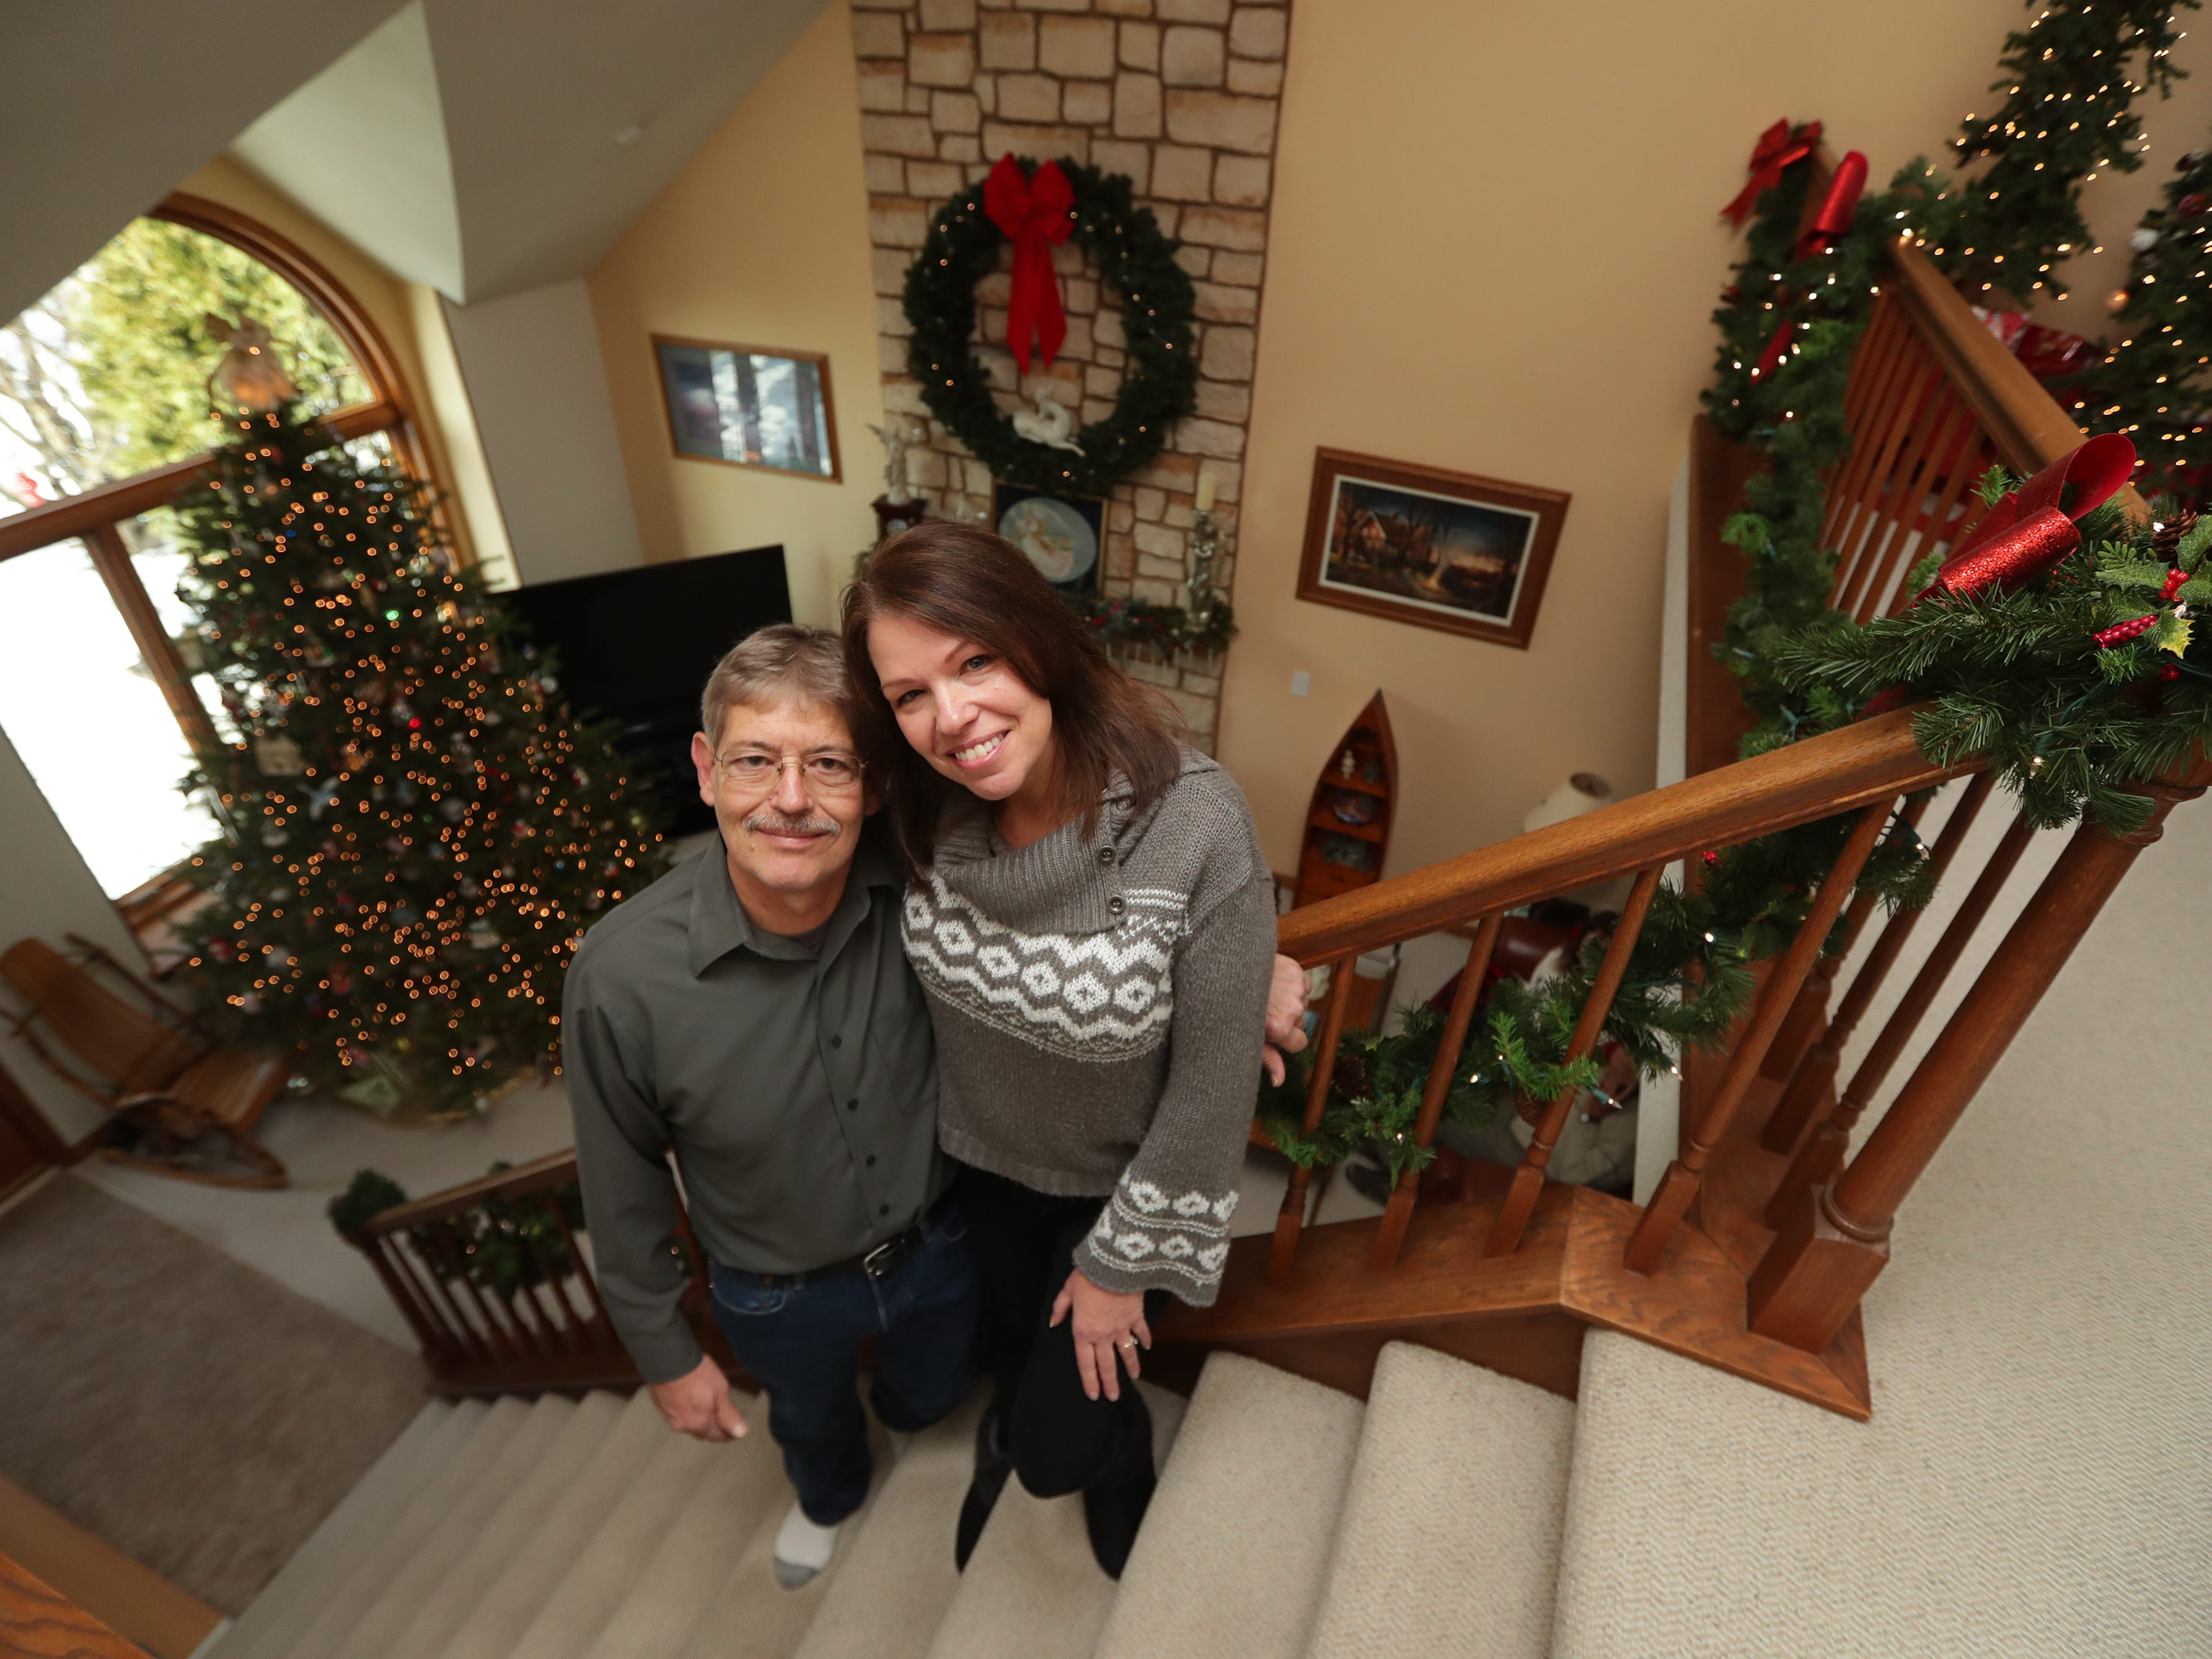 Renee and Lee Sirny stand on the staircase leading to the second floor of their Muskego home, which is elaborately decked out for the holidays.